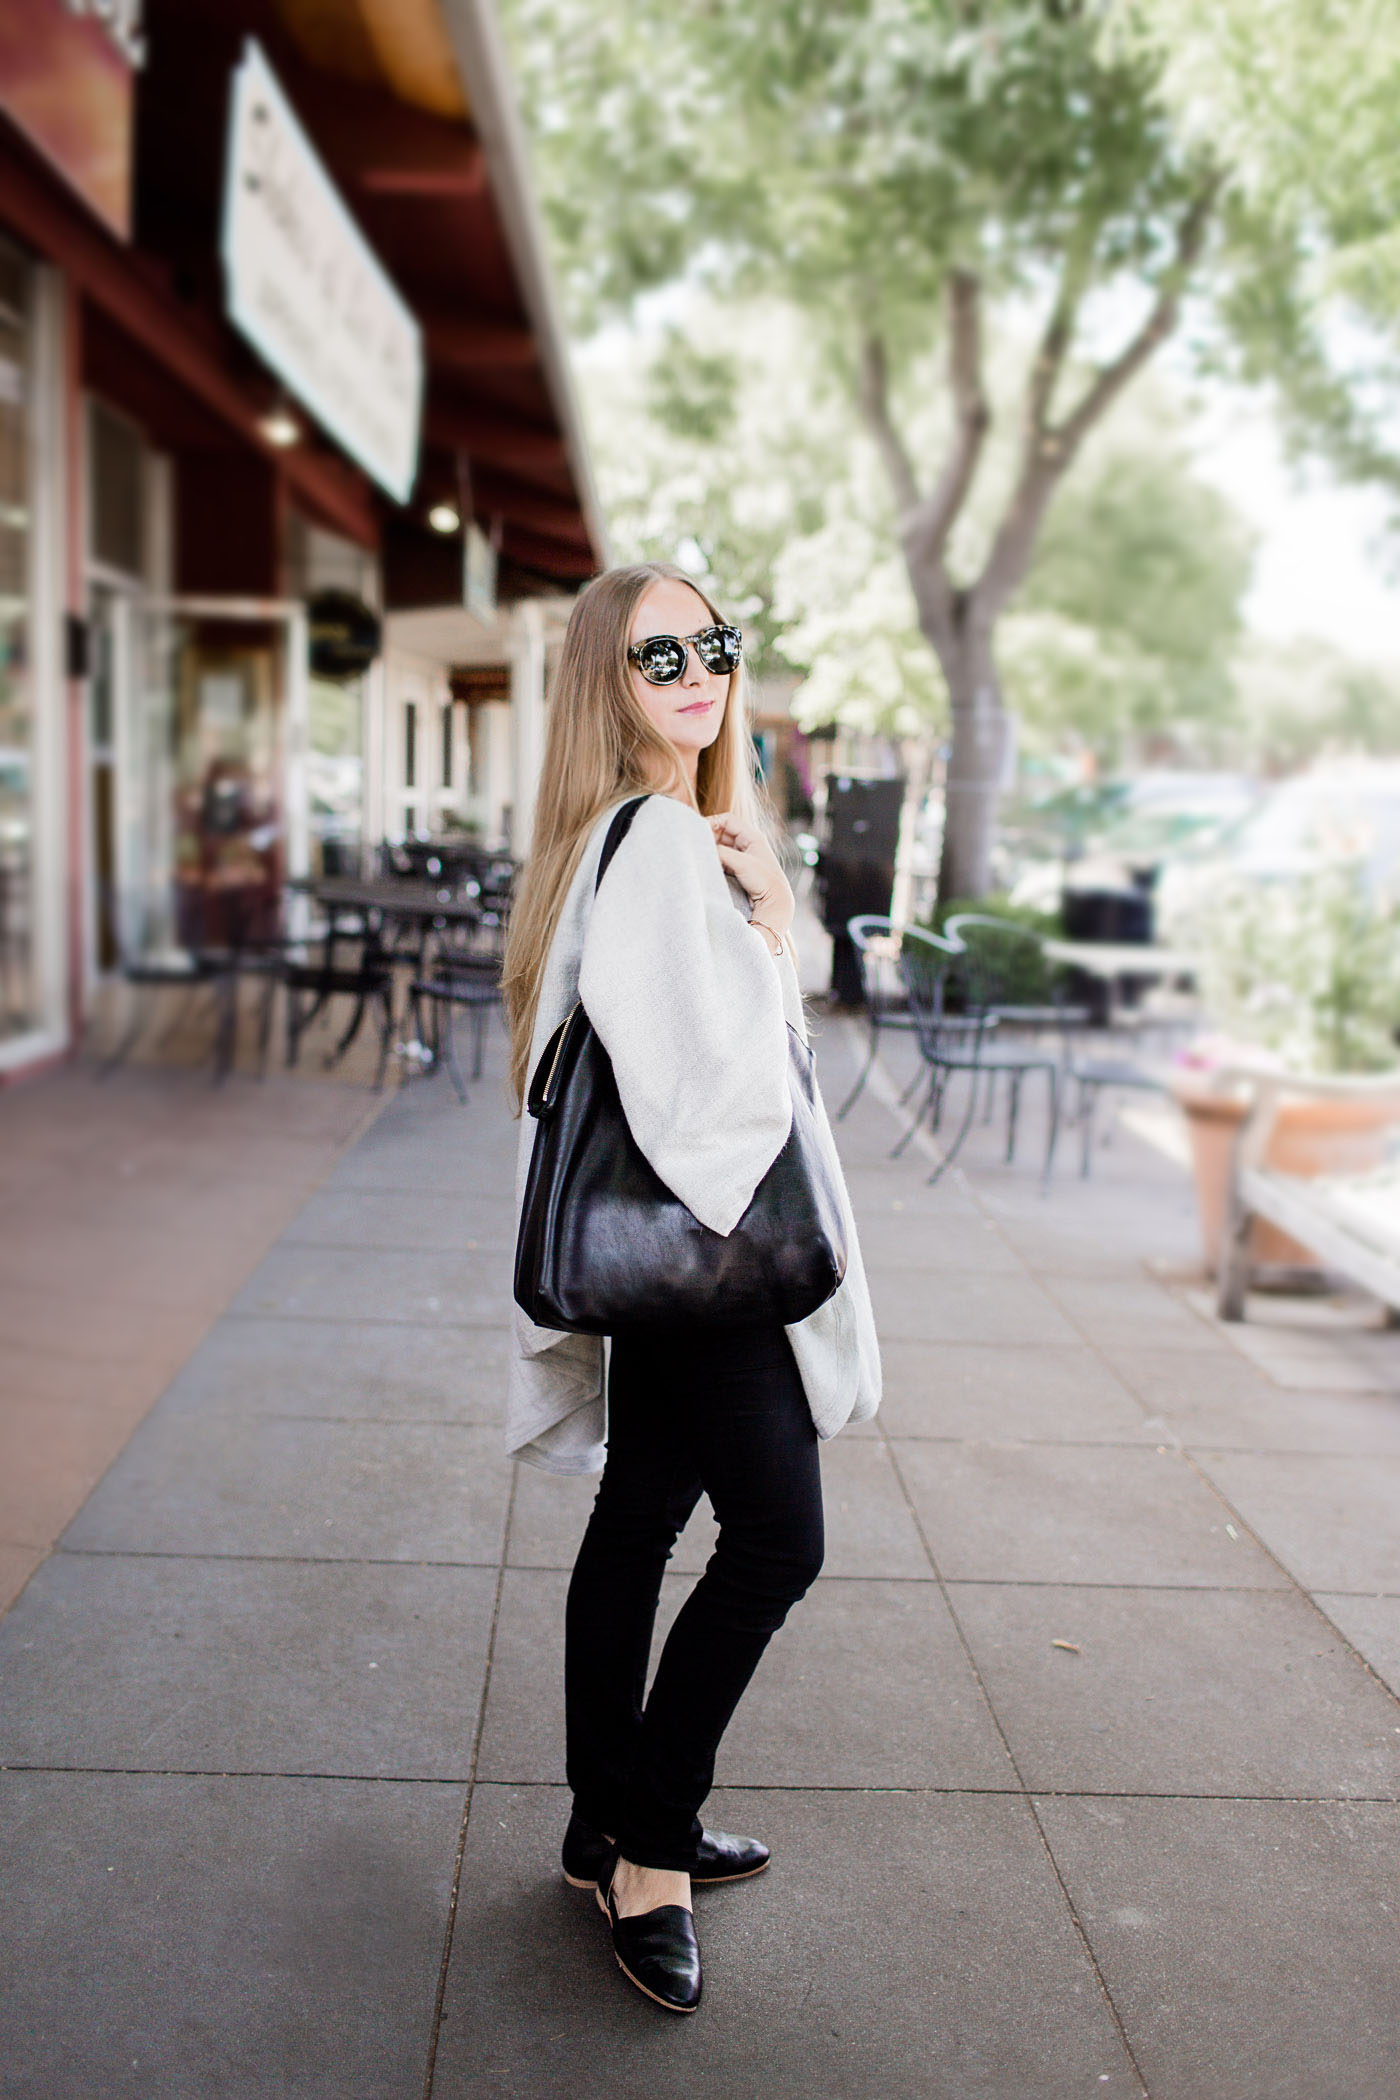 Casual outfit for Spring in Los Altos, California. Wearing Cuyana, Acne Studios, Céline, Emerson Fry